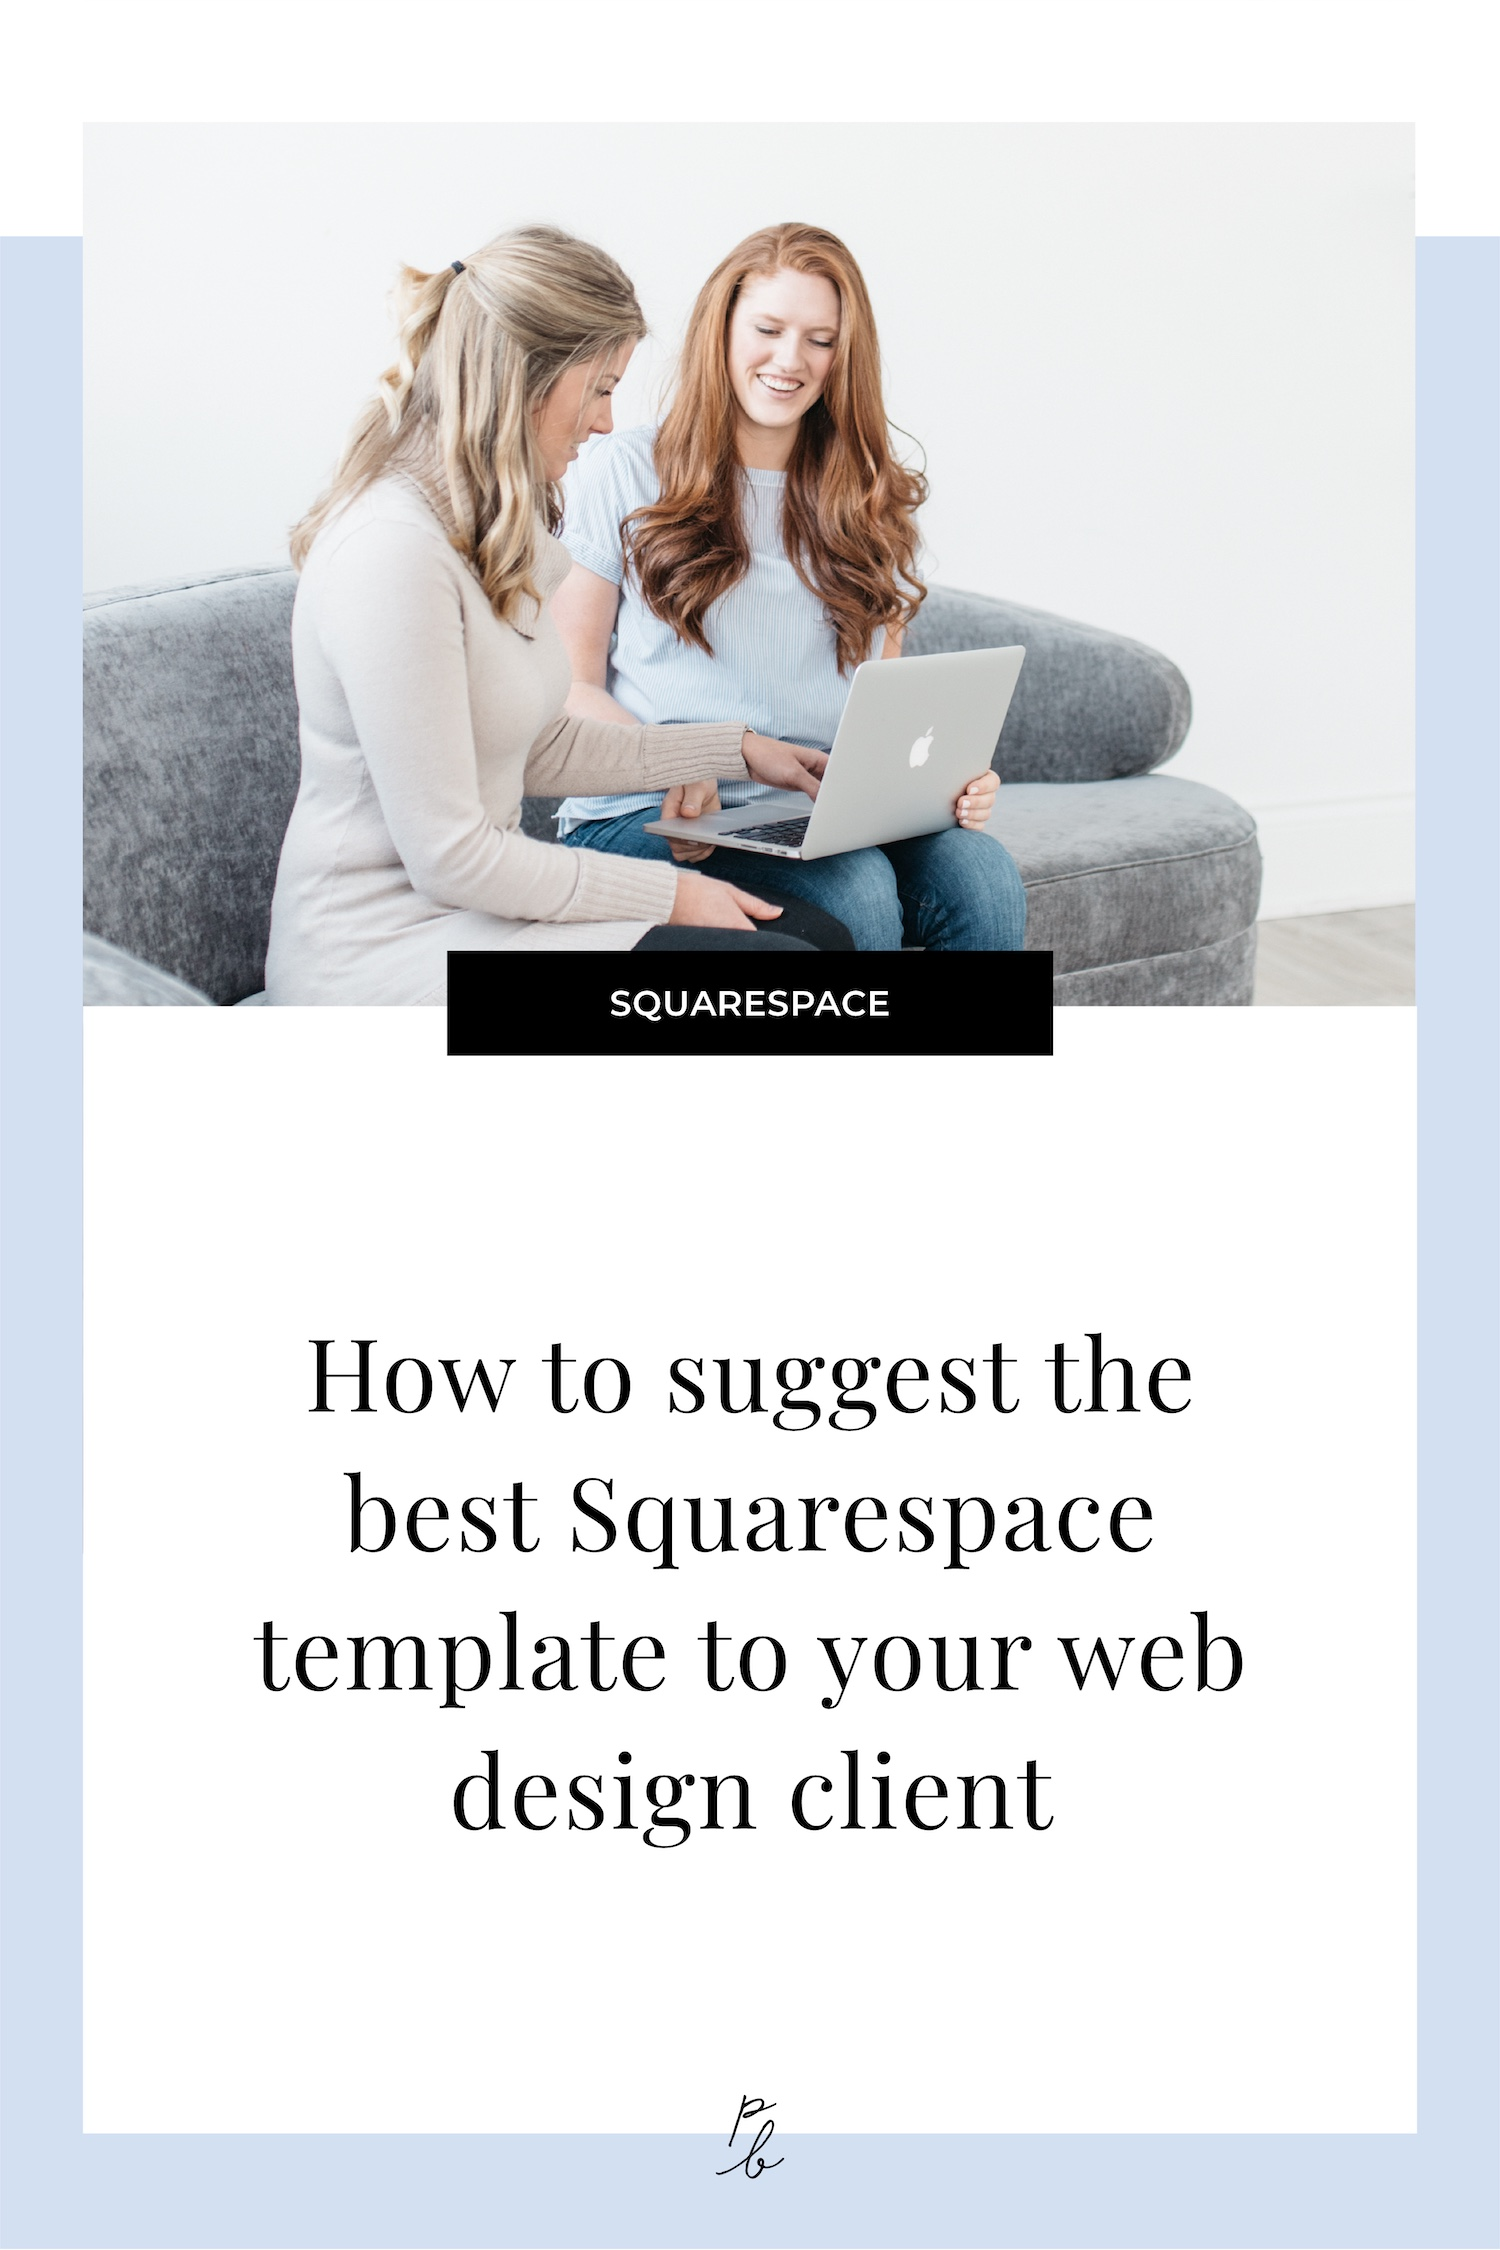 How to suggest the best Squarespace template to your web design client.jpg